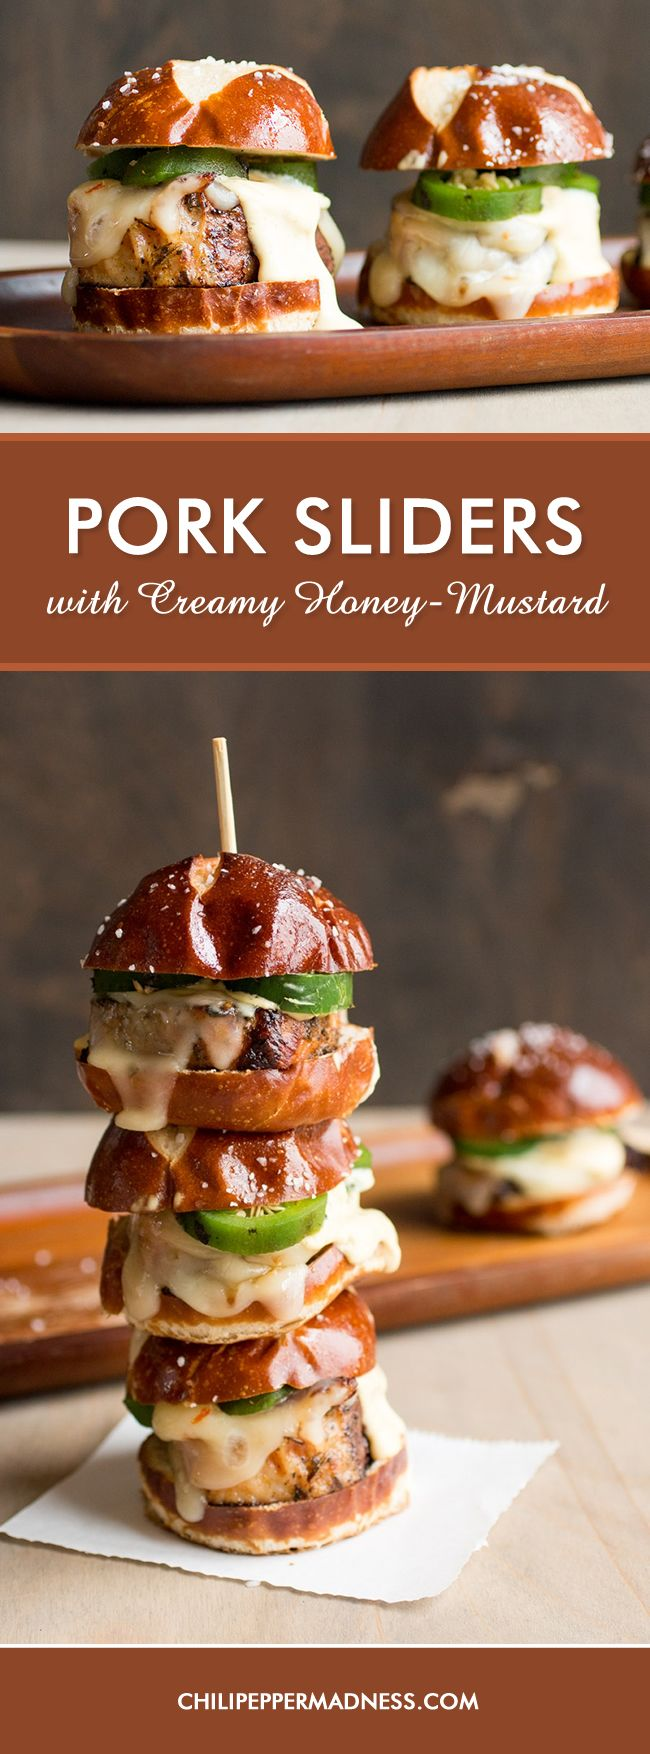 Pork Sliders with Creamy Honey Mustard –  These mini pork burgers, made from lean pork loin, are topped with melty pepper jack cheese and roasted jalapenos, then smothered with homemade creamy honey-mustard sauce. Perfect for parties. Get the recipe here.